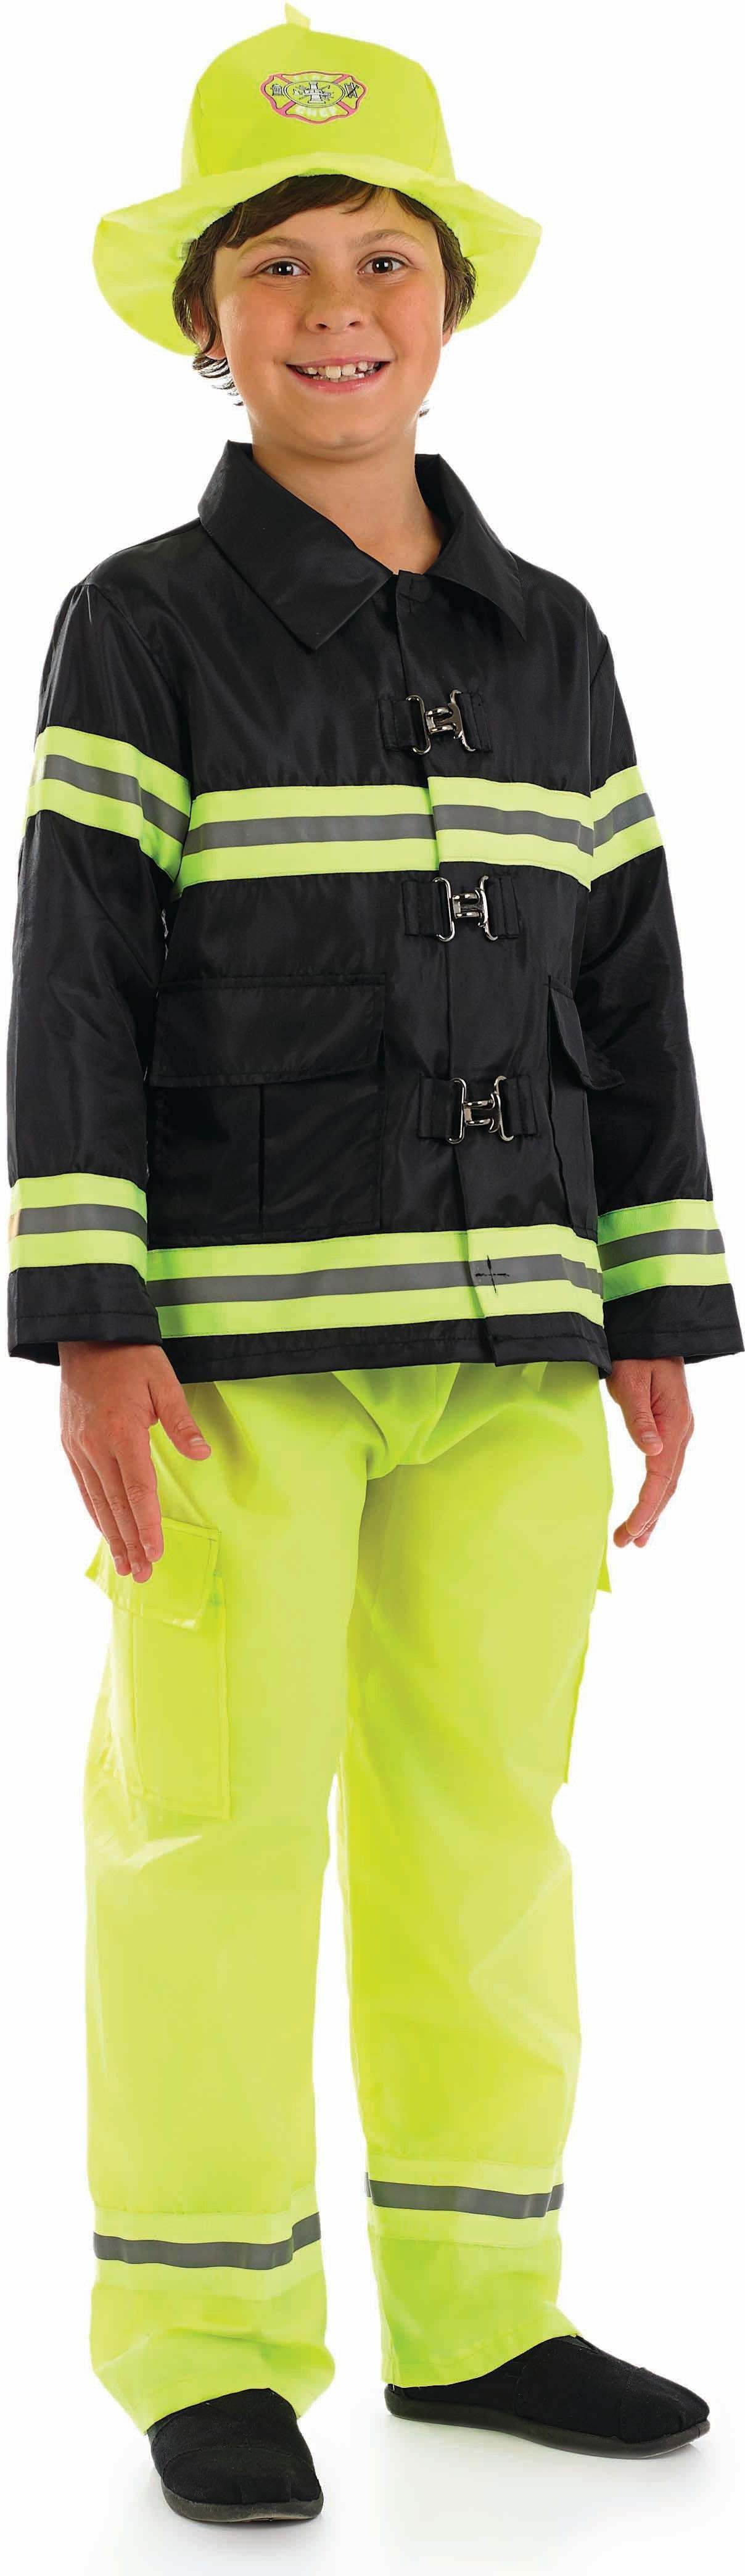 Boys Fireman Fire Service Outfit - (Black, Yellow)